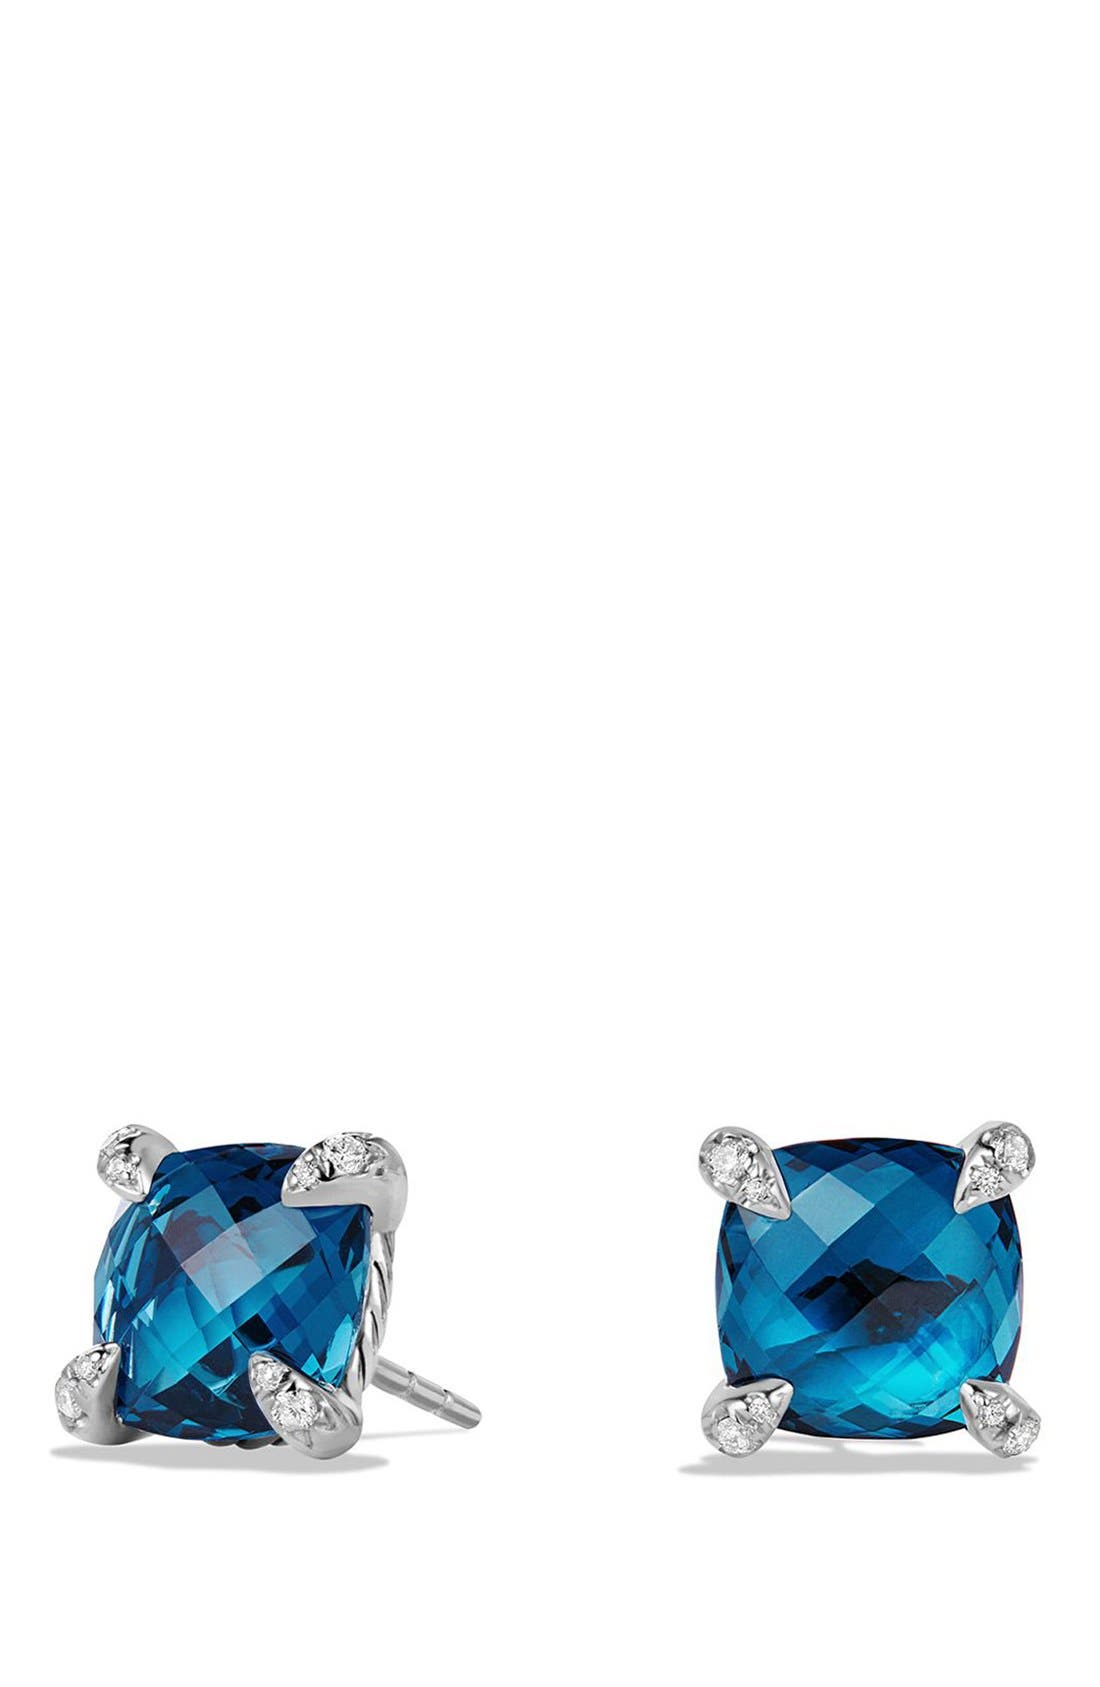 David Yurman 'Châtelaine' Earrings with Semiprecious Stones and Diamonds